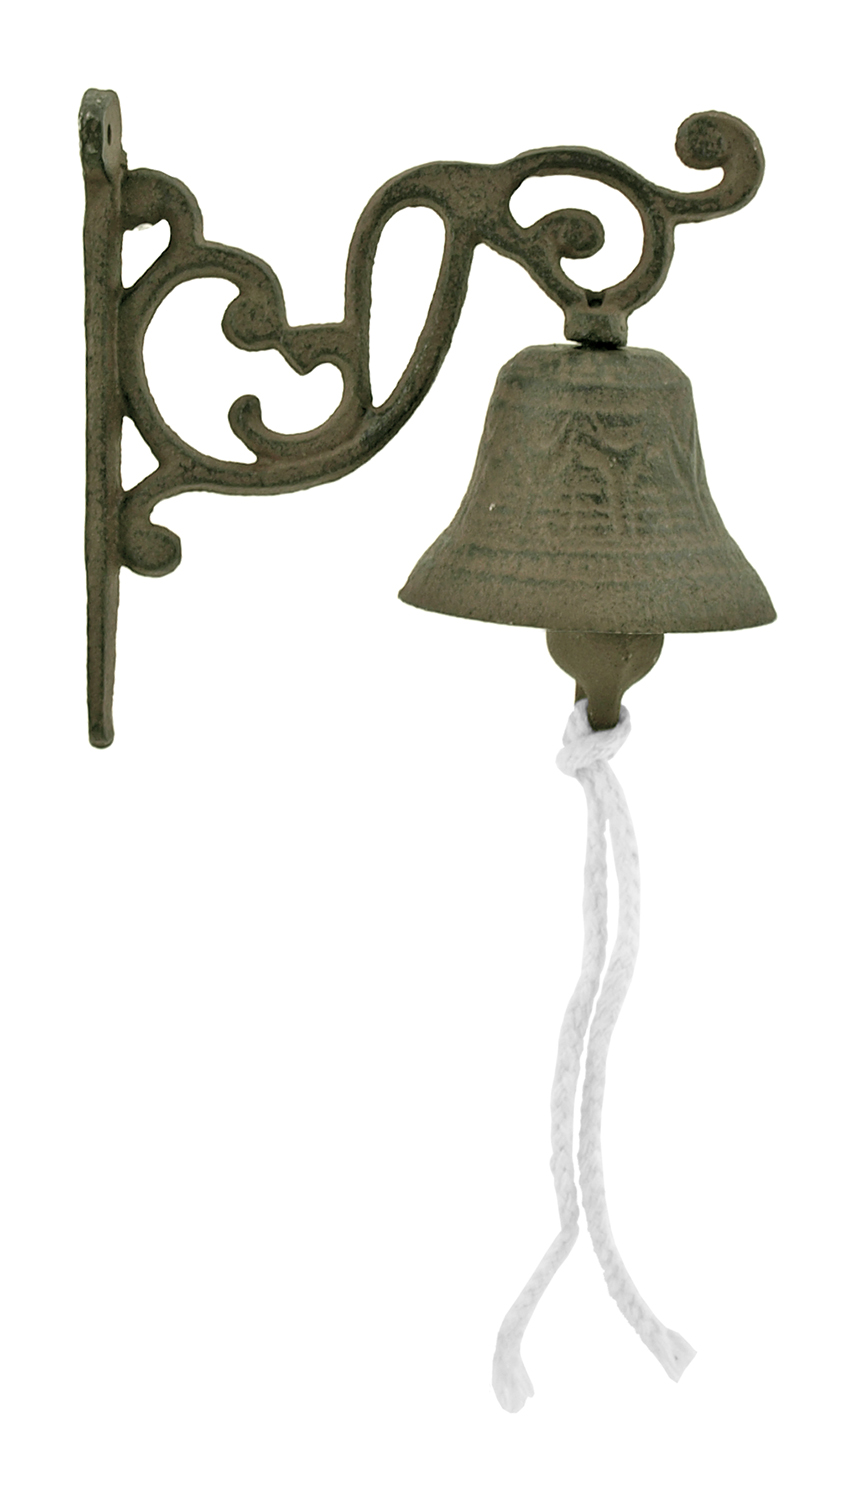 3 in Cast Iron Antique Rope Pull Doorbell or Dinner Bell - Valley